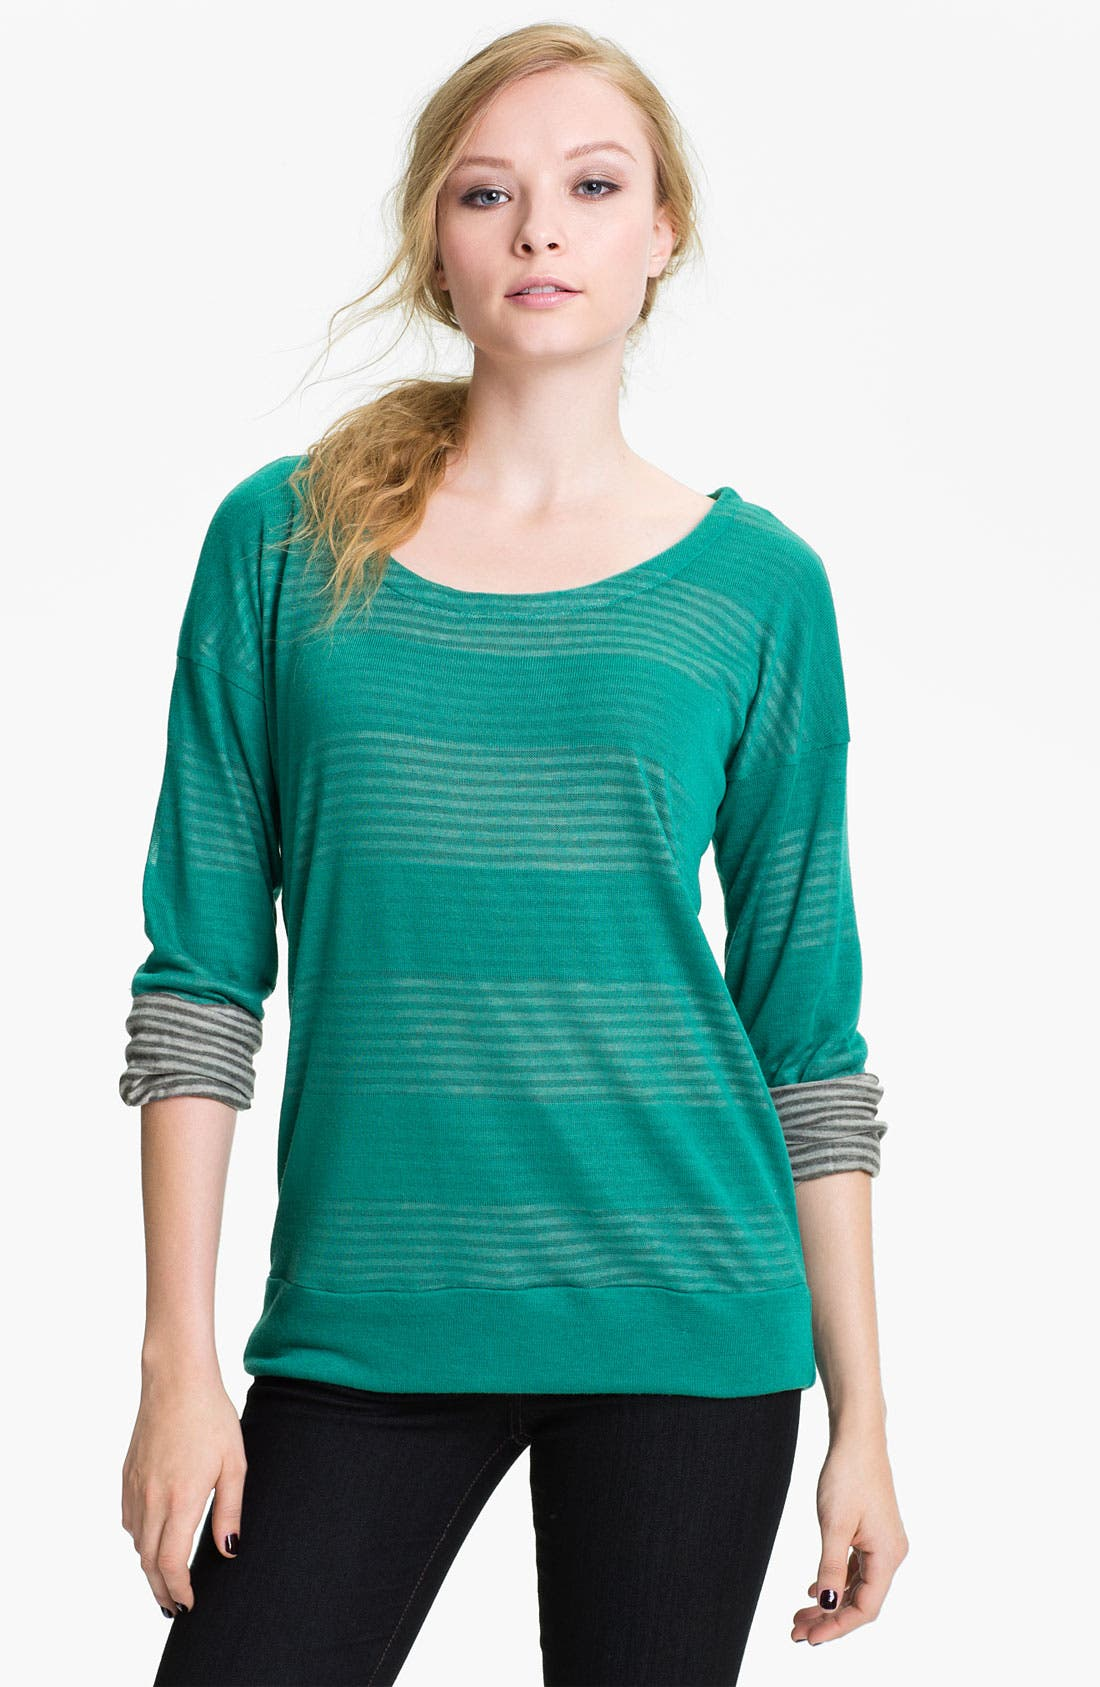 Alternate Image 1 Selected - Splendid Double Knit Stripe Top